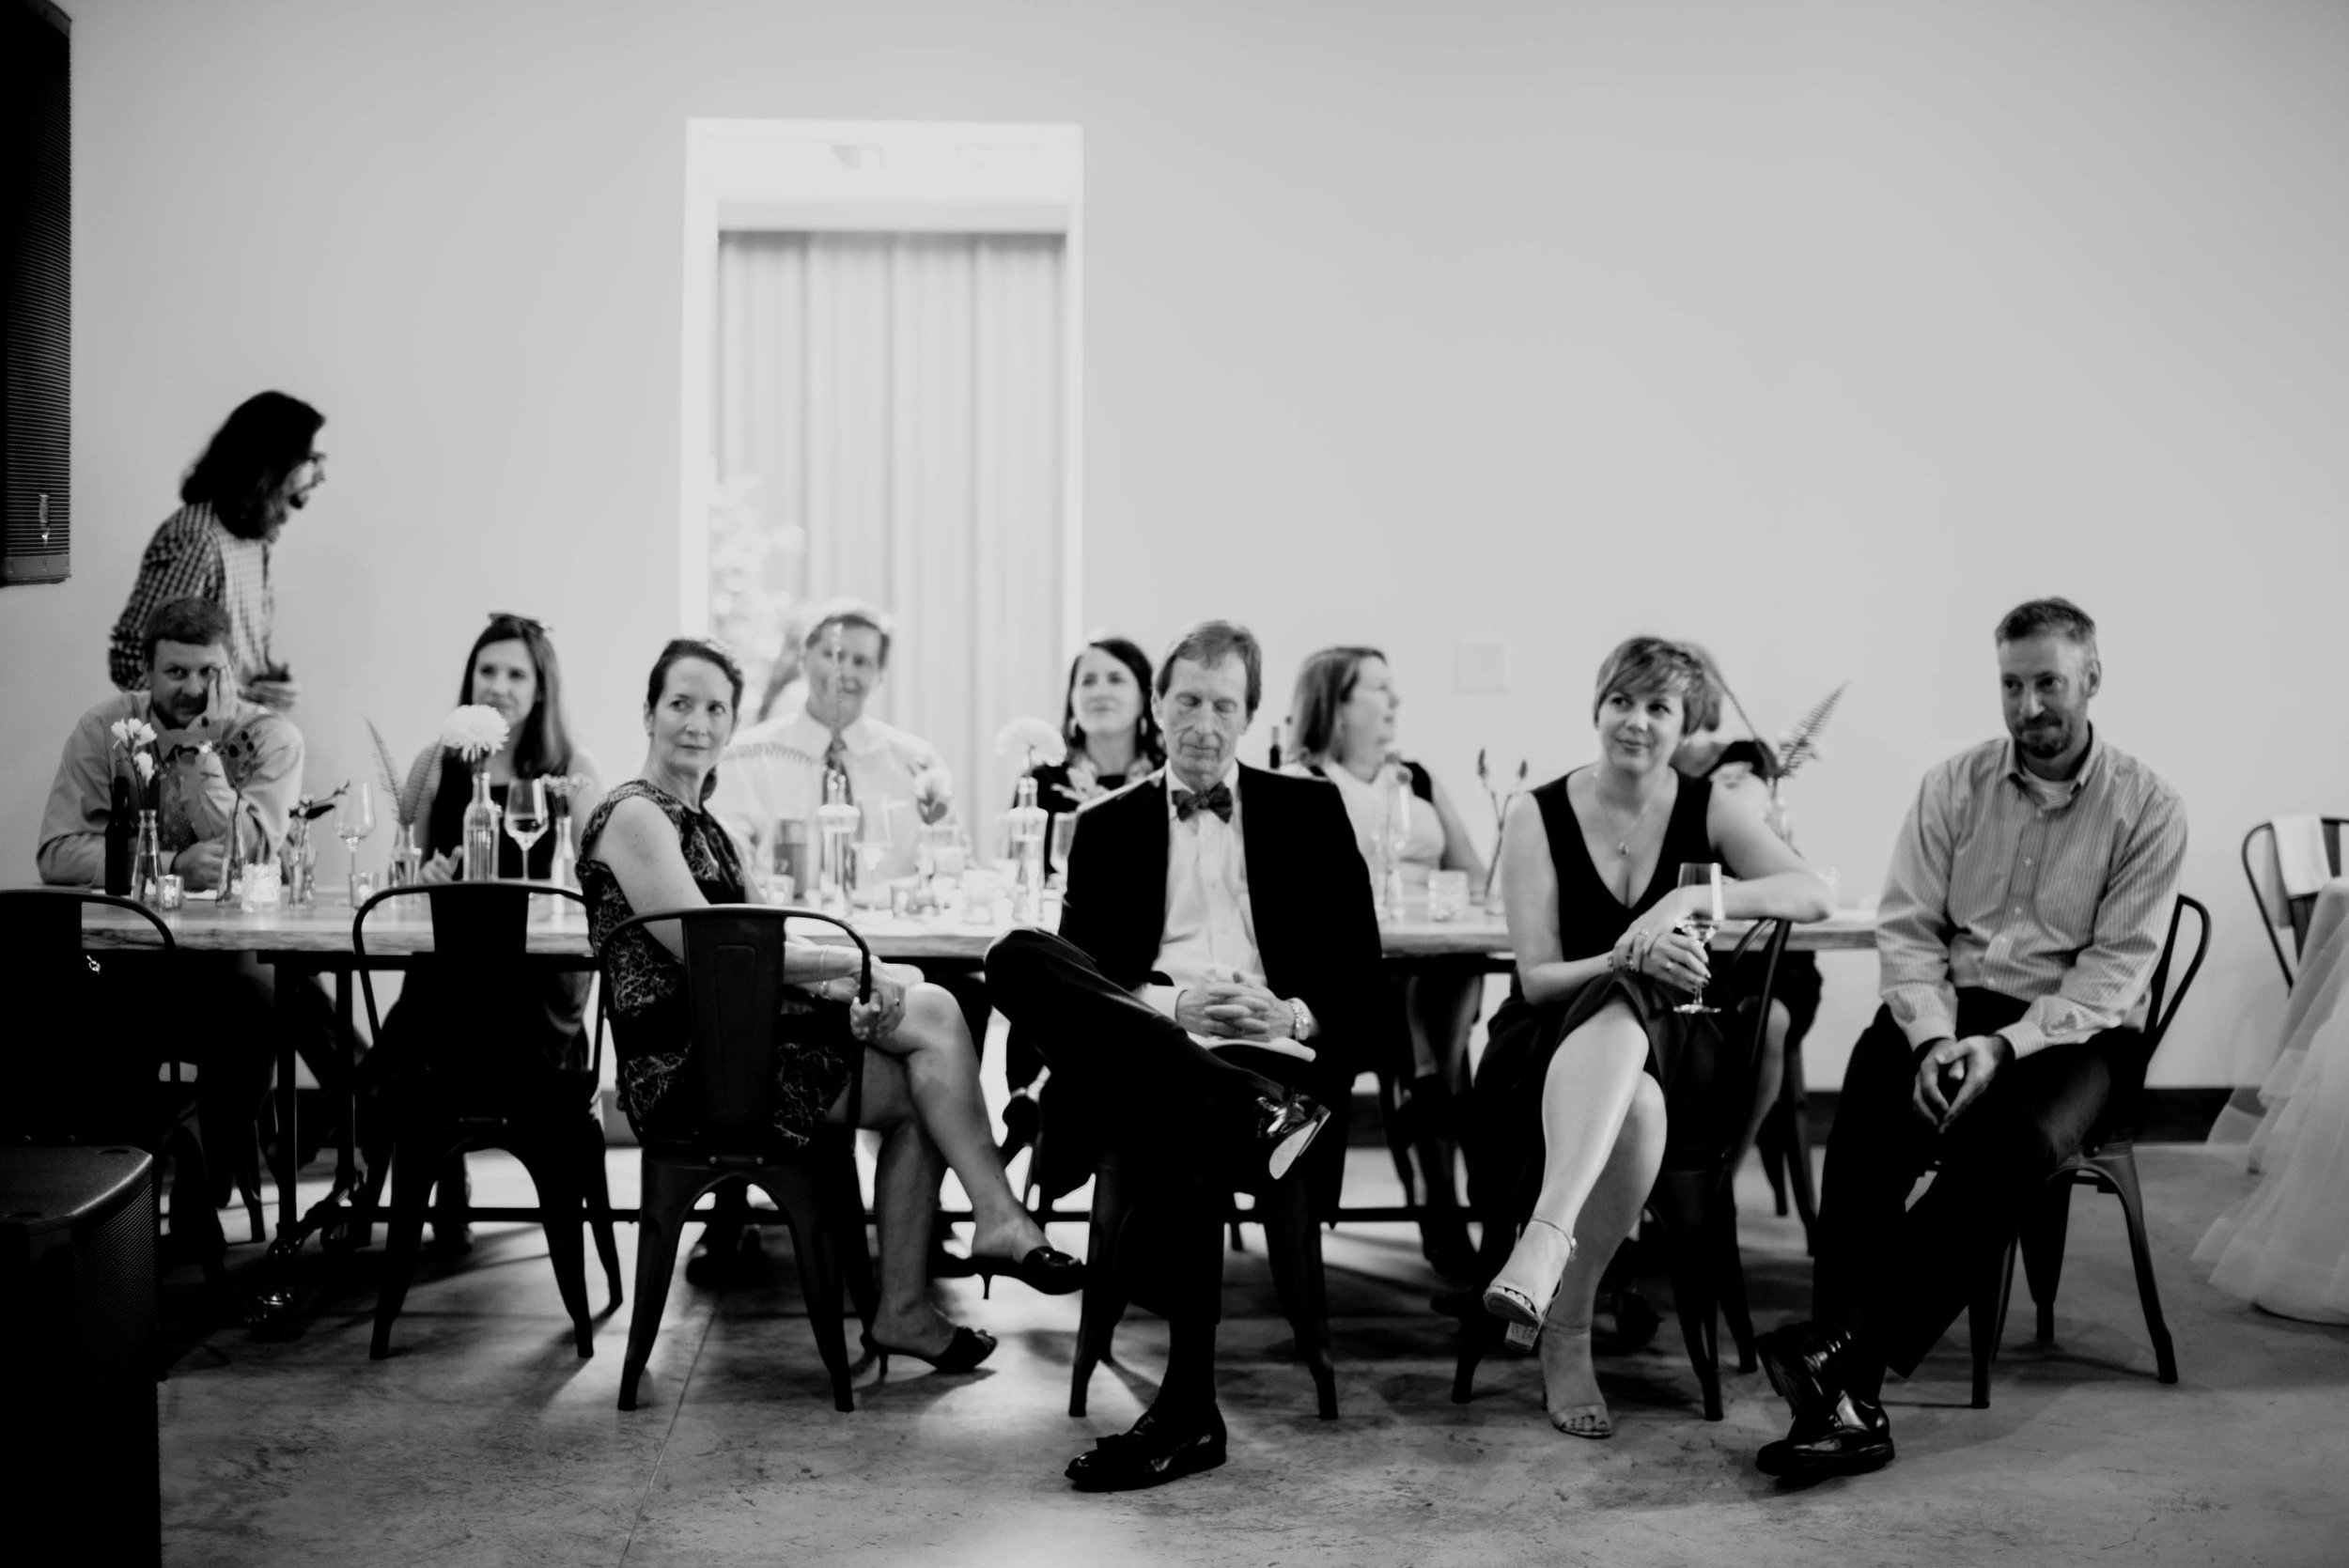 wedding guests looking on during toasts and one wedding guest asleep in his chair